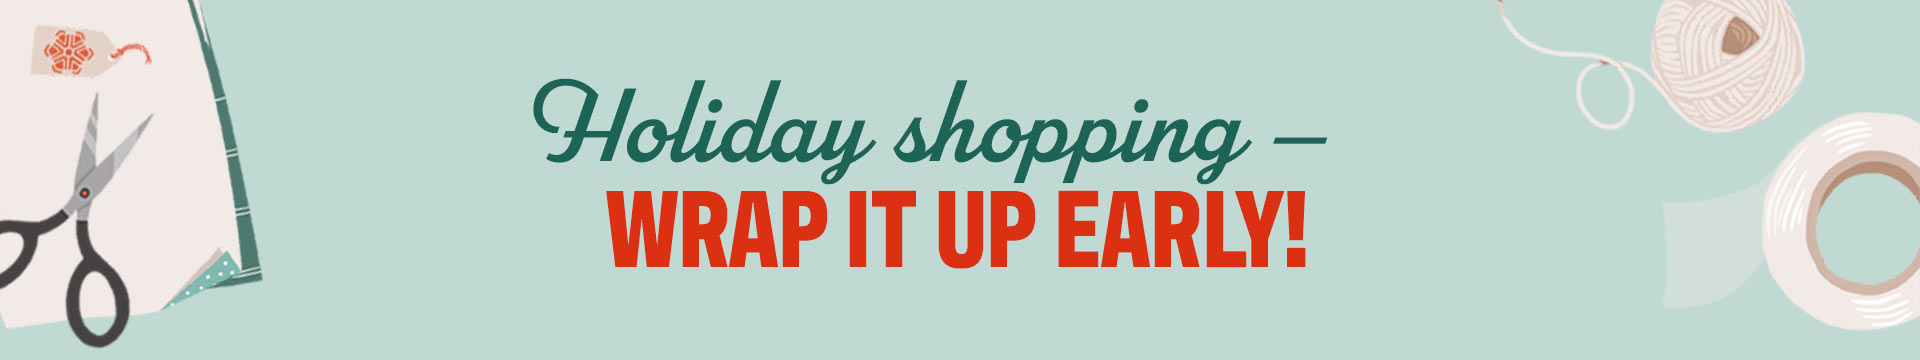 Holiday shopping - Wrap it up early